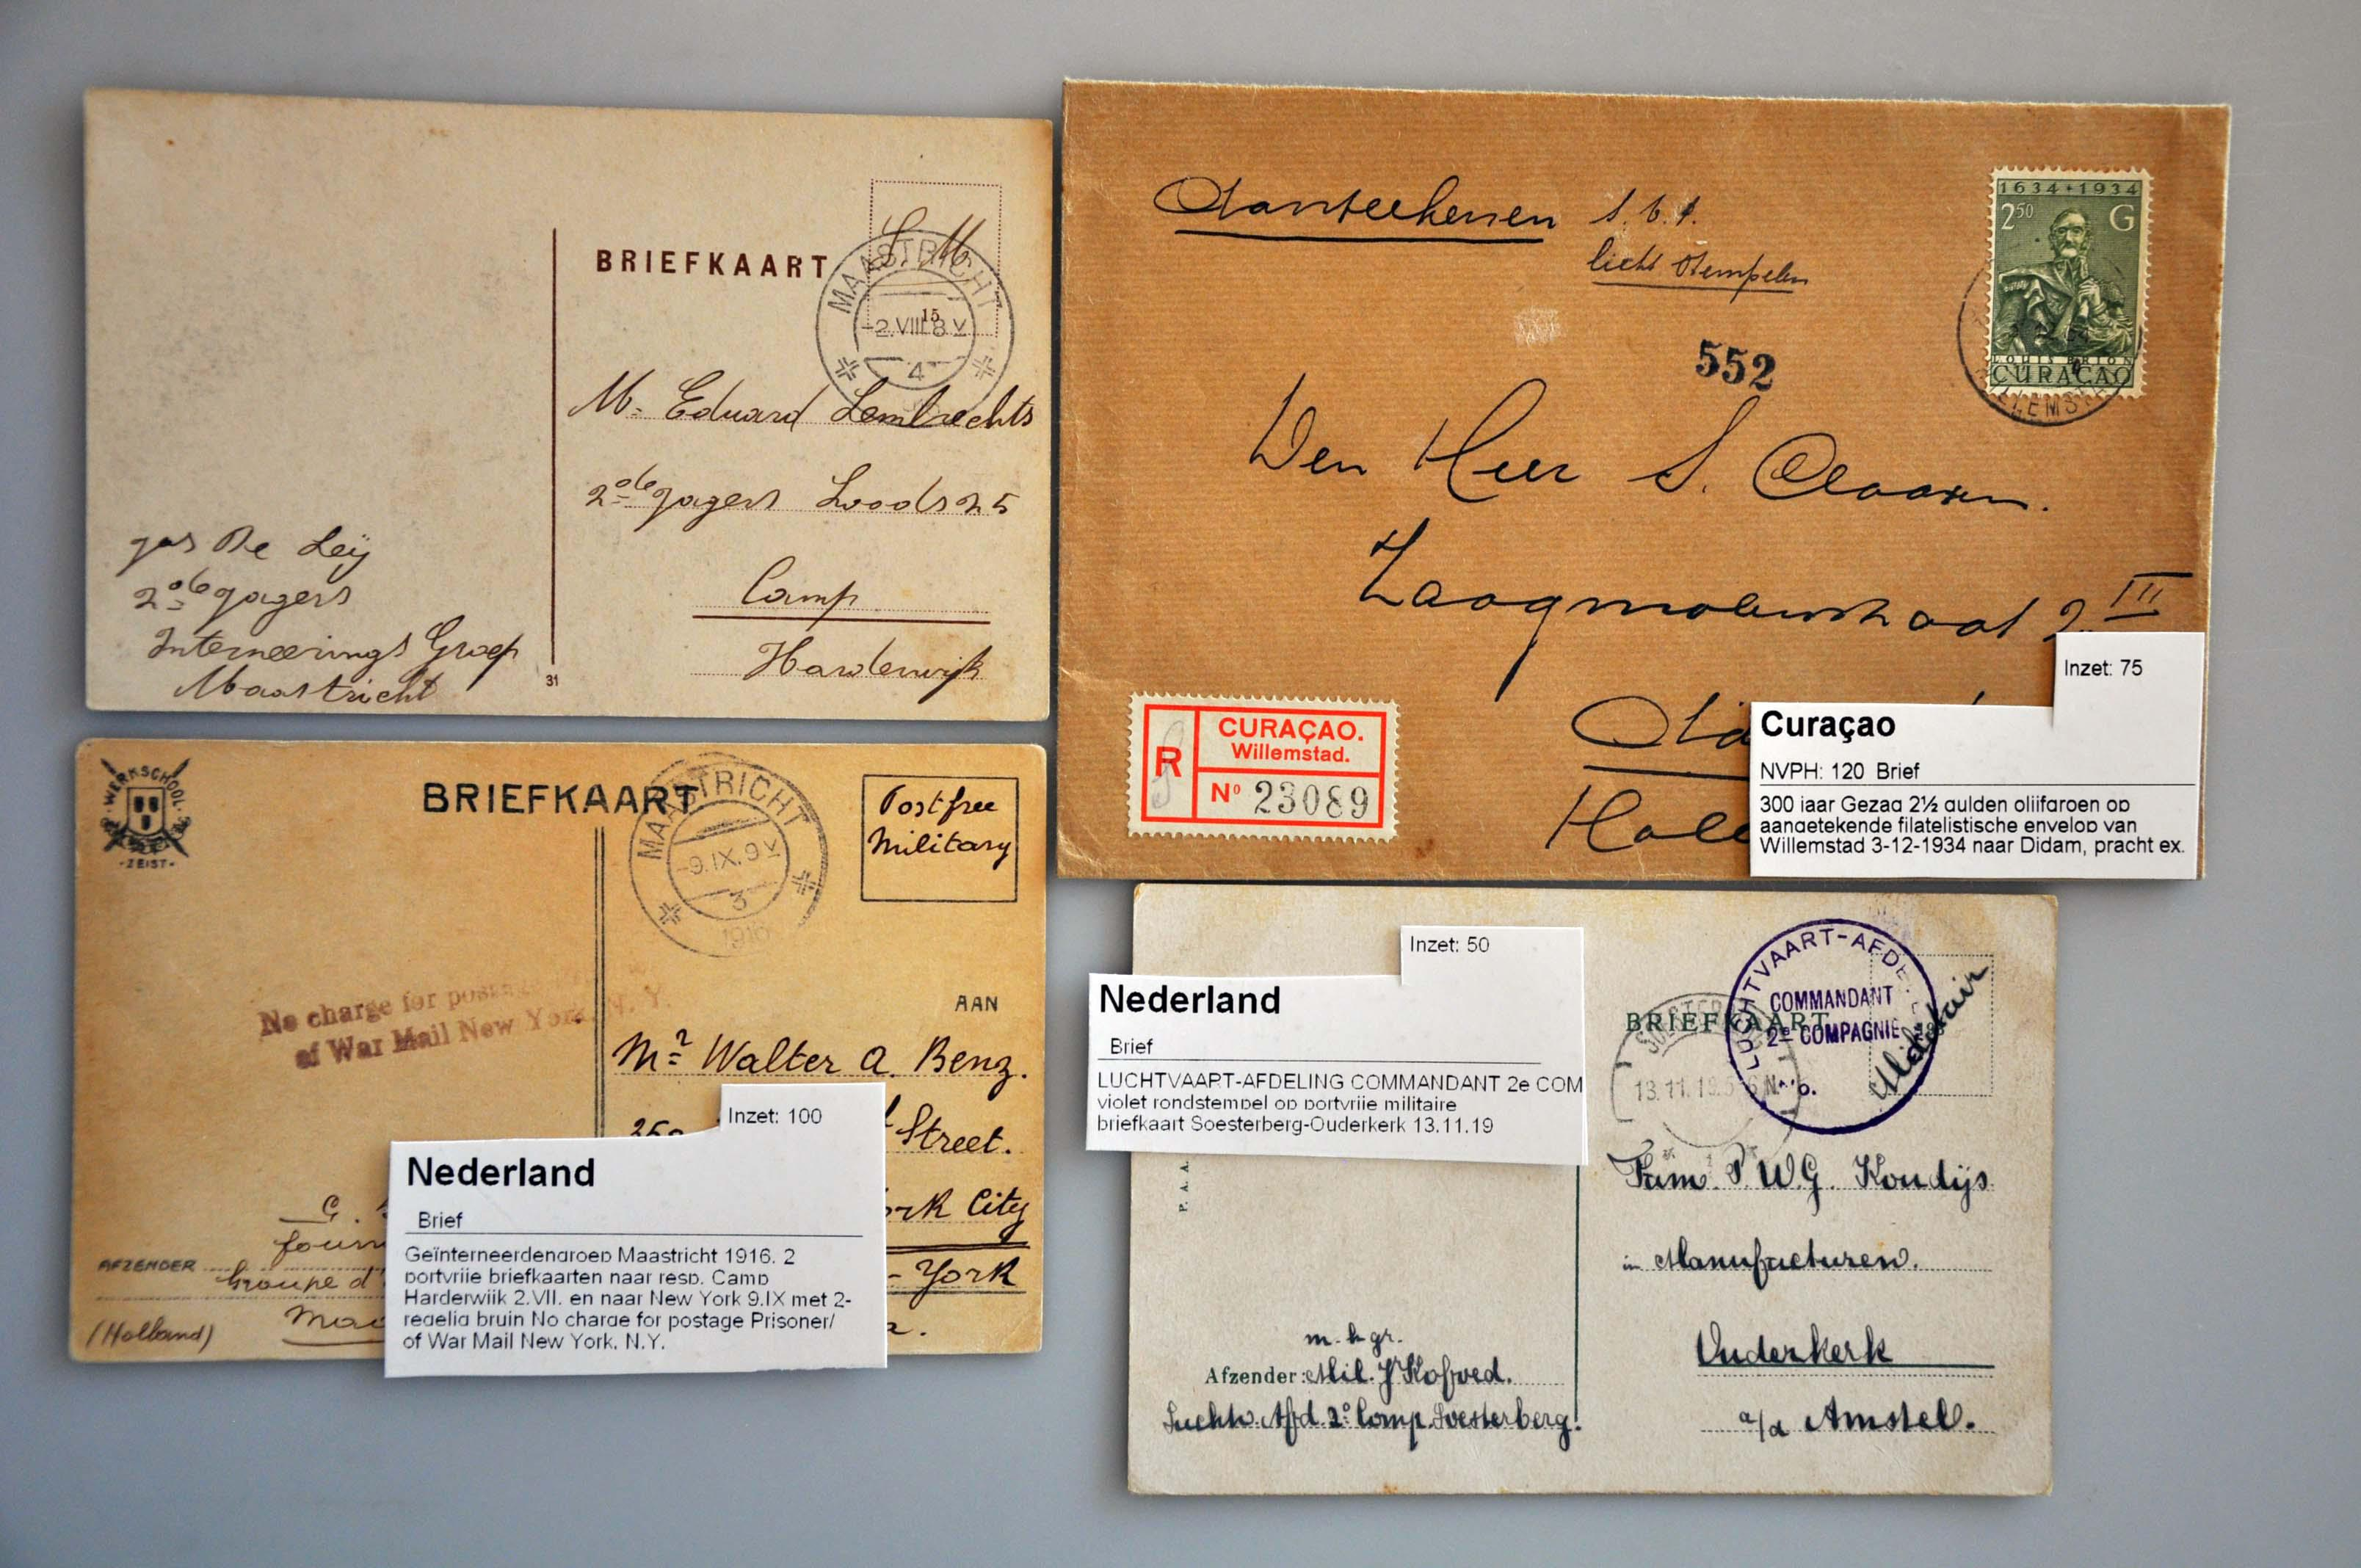 Lot 2786 - Netherlands and former colonies Netherlands and Former Territories -  Corinphila Veilingen Auction 245-246 Day 3 - Netherlands and former colonies - Single lots, Collections and lots, Boxes and literature